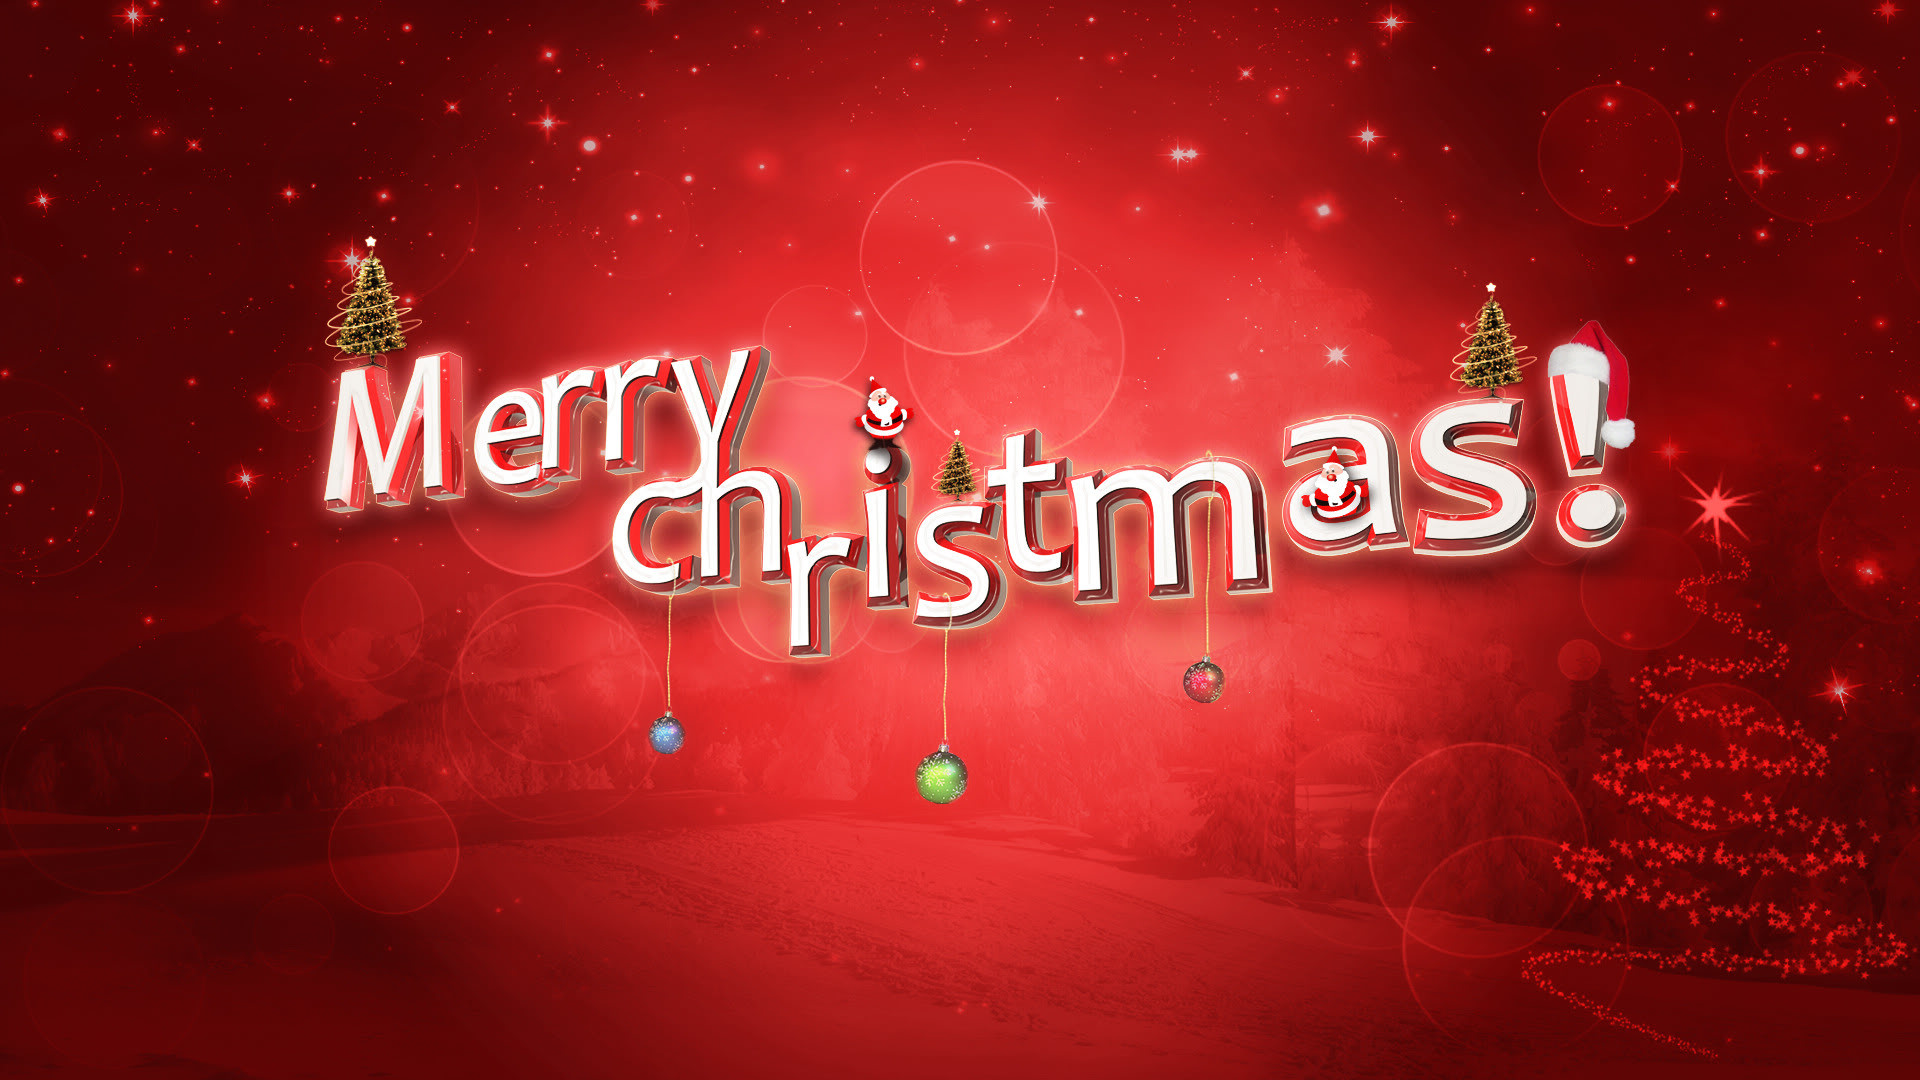 Merry Christmas HD Wallpapers: Find best latest Merry Christmas HD  Wallpapers for your PC desktop background & mobile phones.